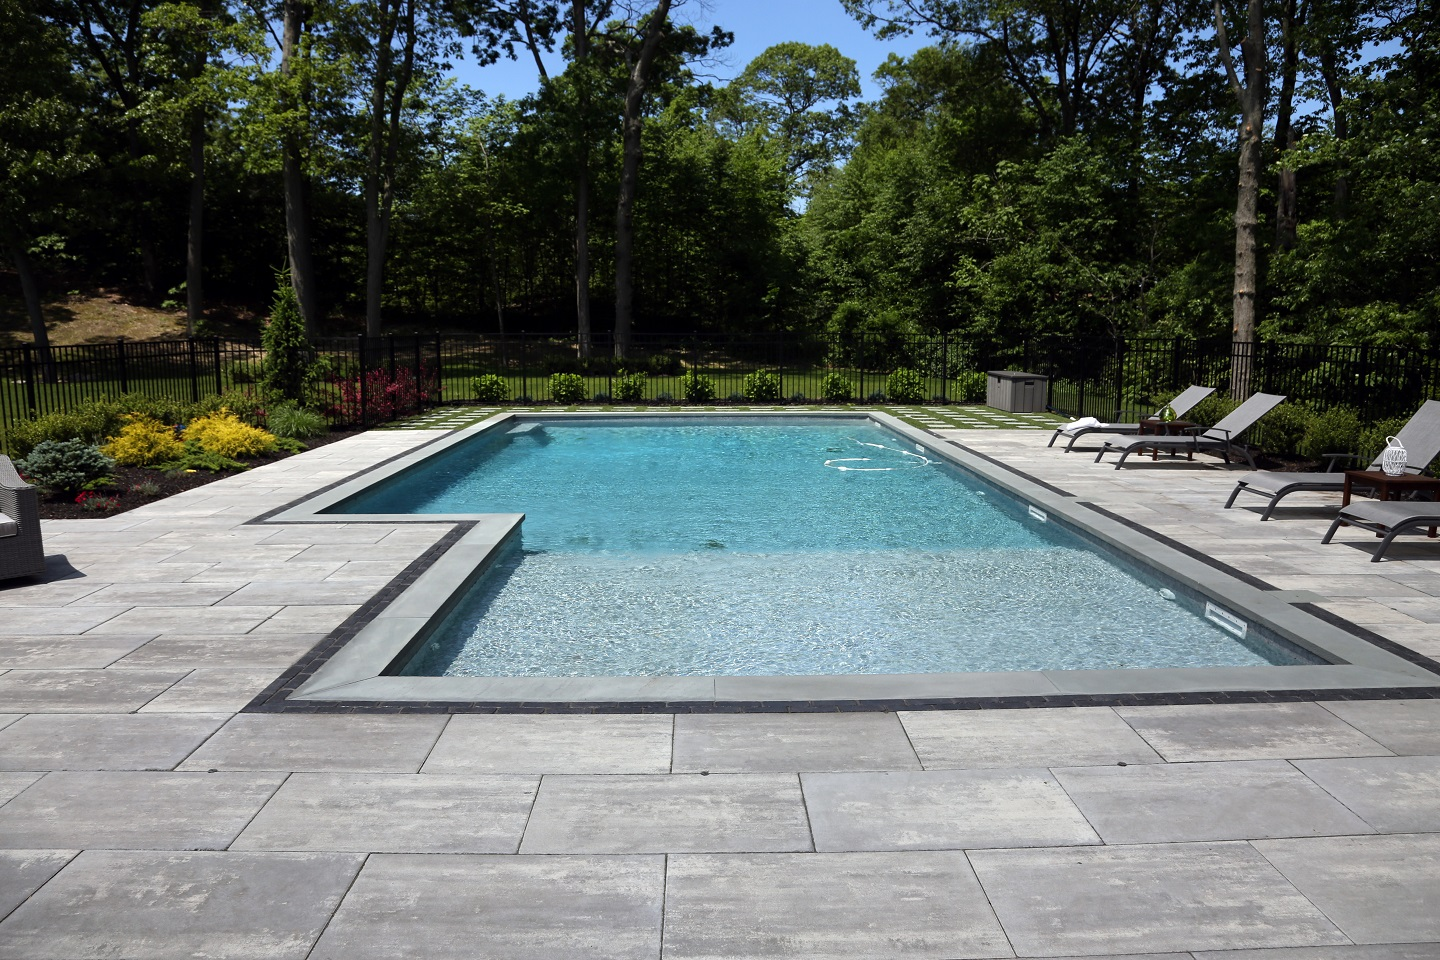 Patios with swimming pool in Commack, New York